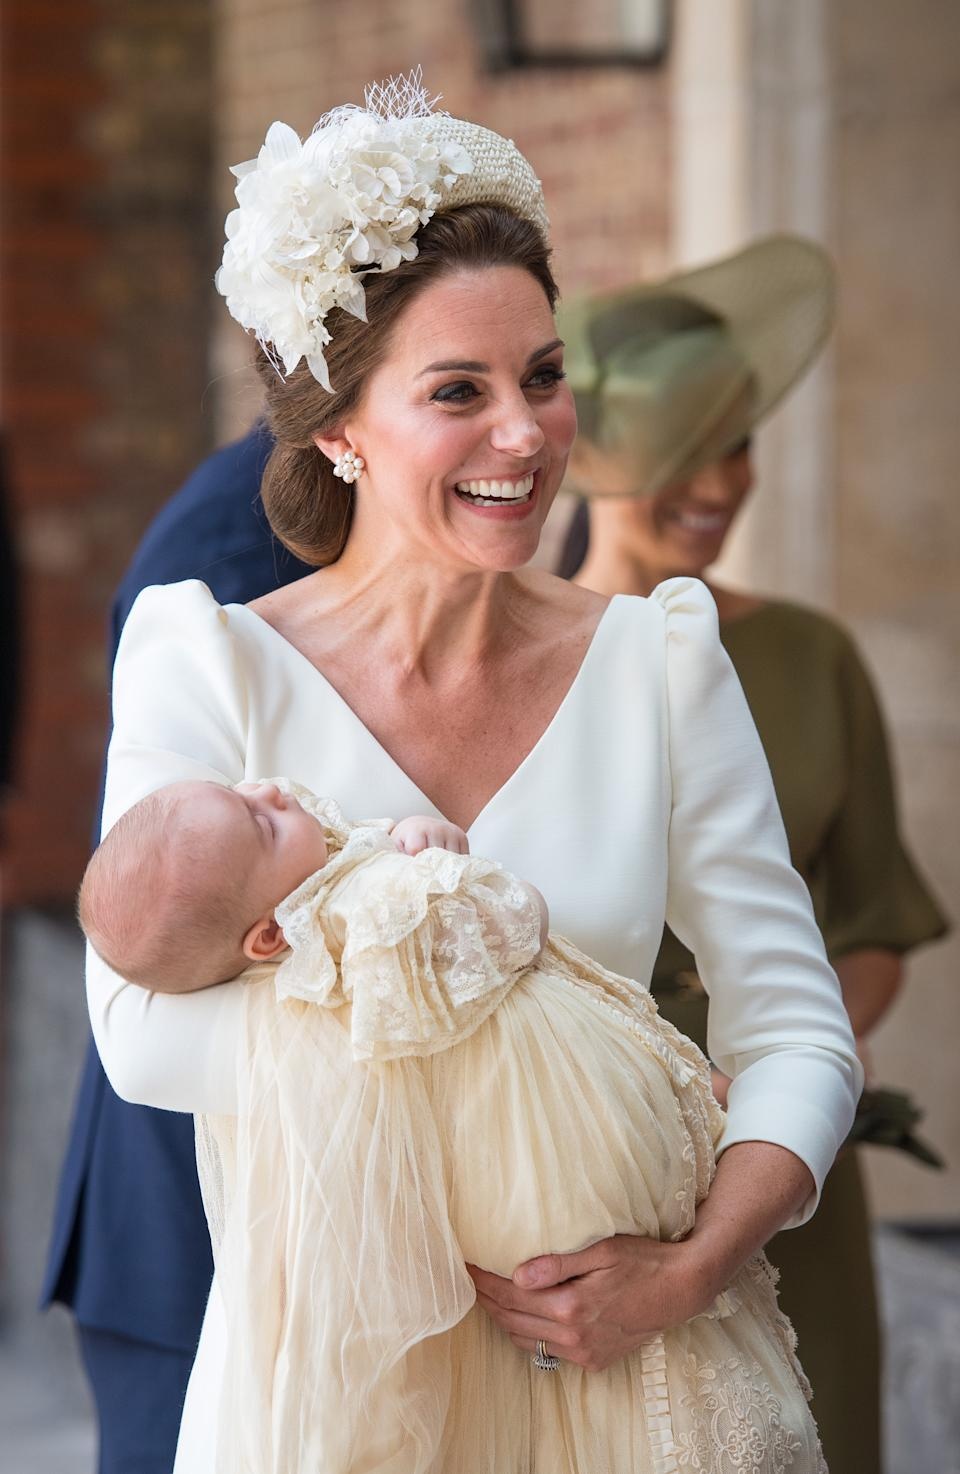 LONDON, ENGLAND - JULY 09: Catherine, Duchess of Cambridge carries Prince Louis as they arrive for his christening service at St James's Palace on July 09, 2018 in London, England. (Photo by Dominic Lipinski - WPA Pool/Getty Images)